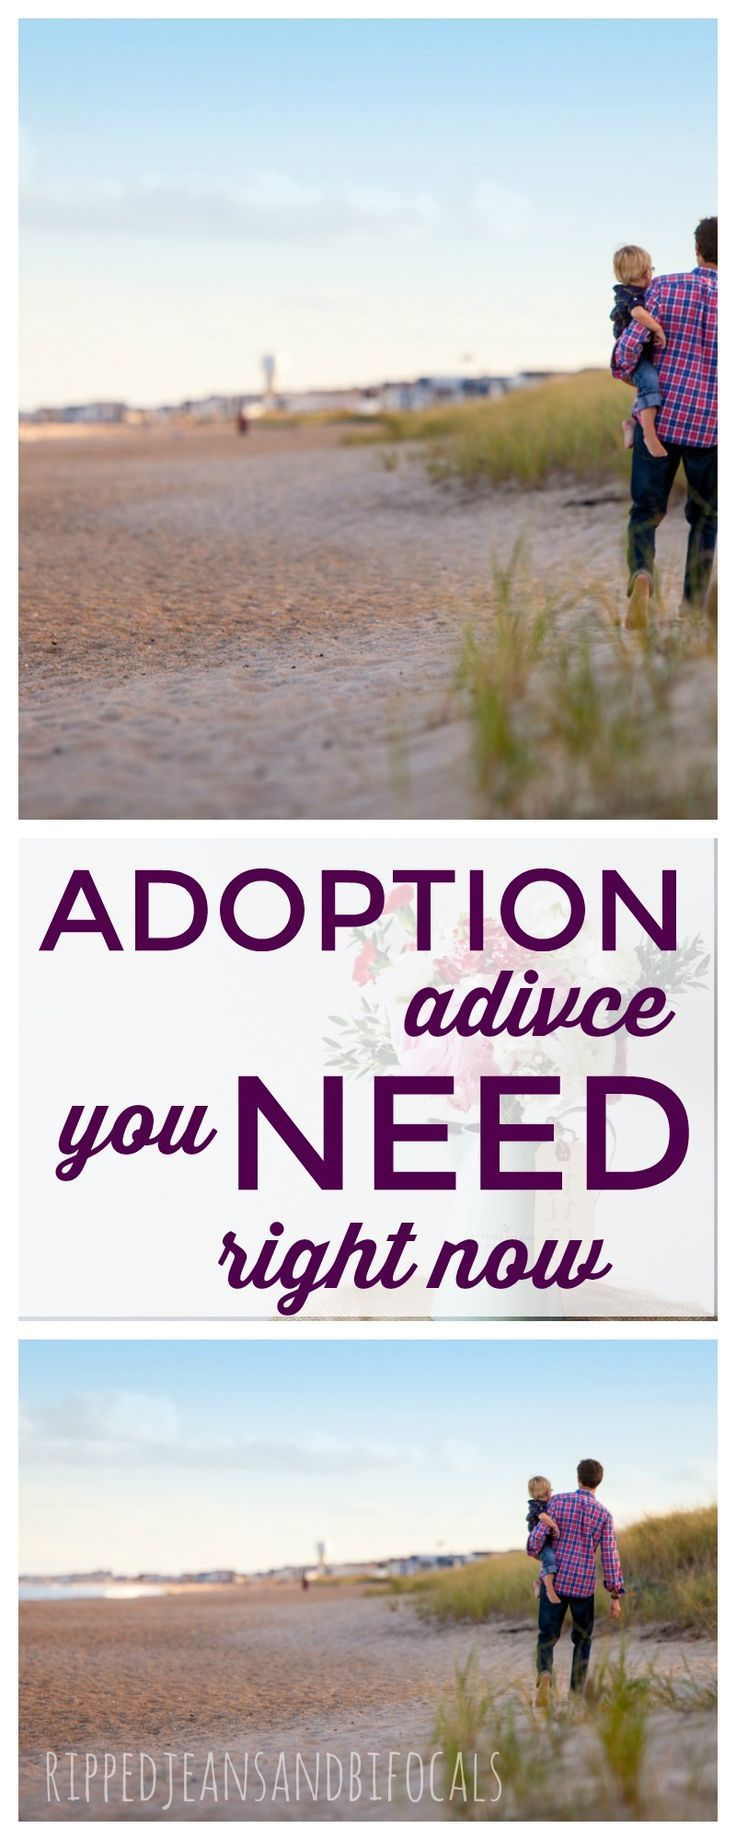 Adoption Advice you need right now.  |adoption|domestic adoption|international adoption|China Adoption|Adoption blogs|China Adoption blogs|Adoption blogger|Adoption tips|adoption advice|adoption mentors| #adoptionsupport